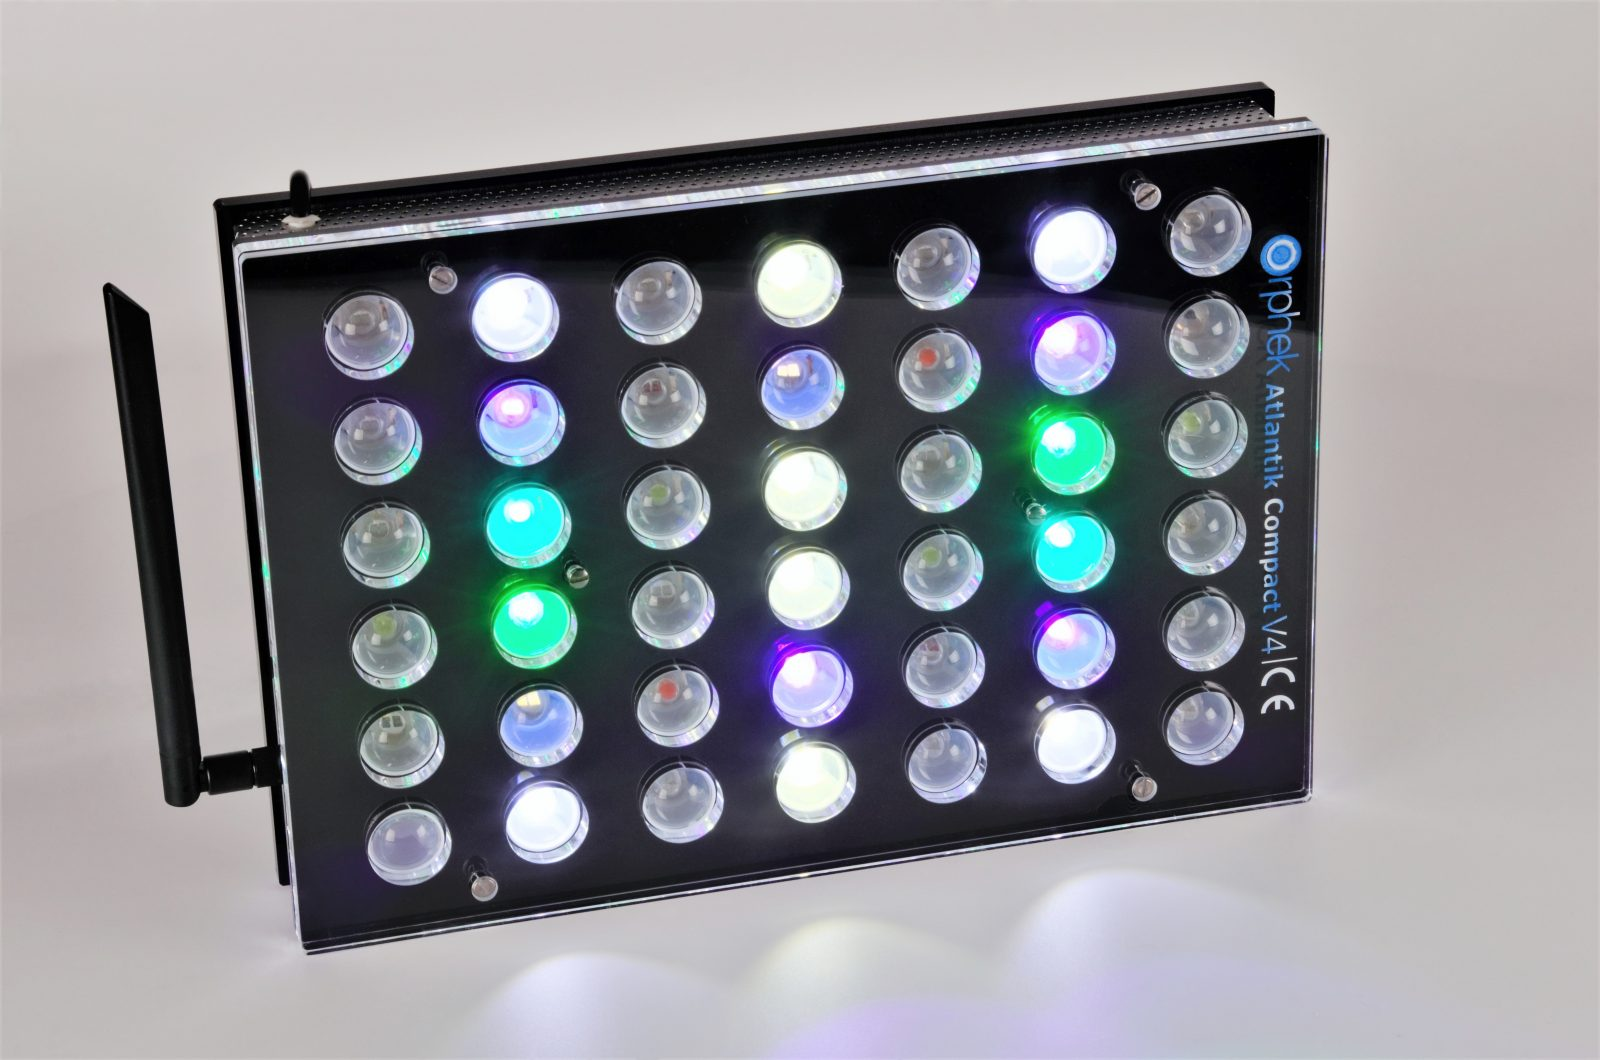 Orphek-Aquarium-LED-Lighting-Atlantik -Compact-V4-light -on -channel 1+3